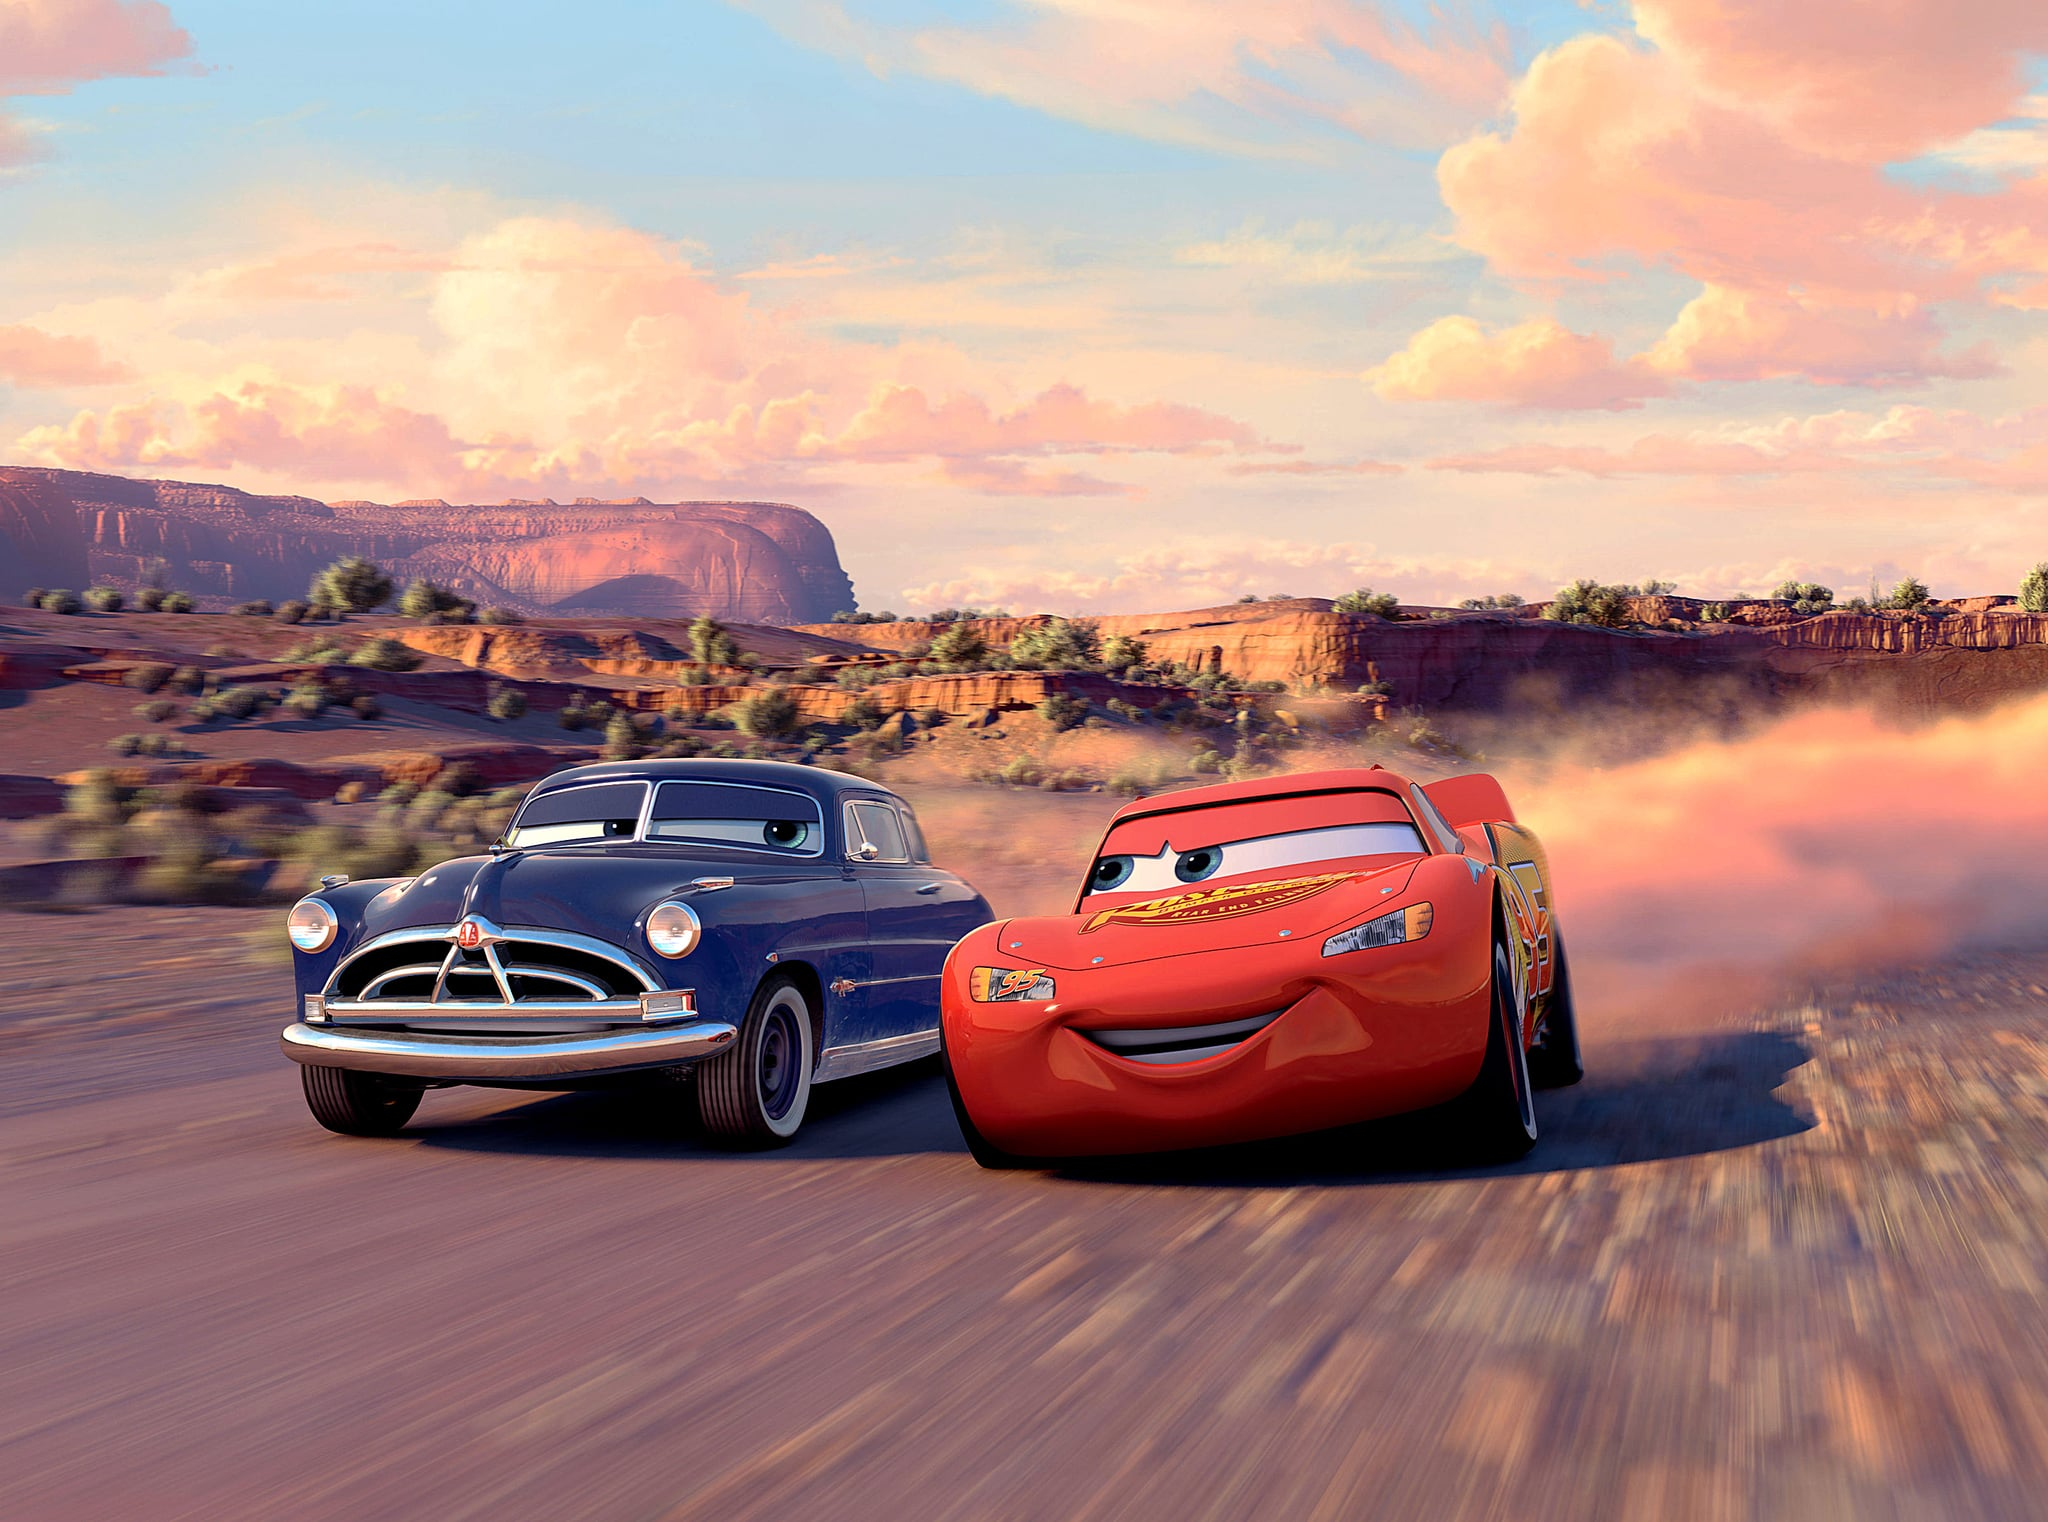 Cars 2006 Pixar Movies Ranked Best To Worst Based On How Many Times Your Kid Made You Watch It Popsugar Family Photo 4